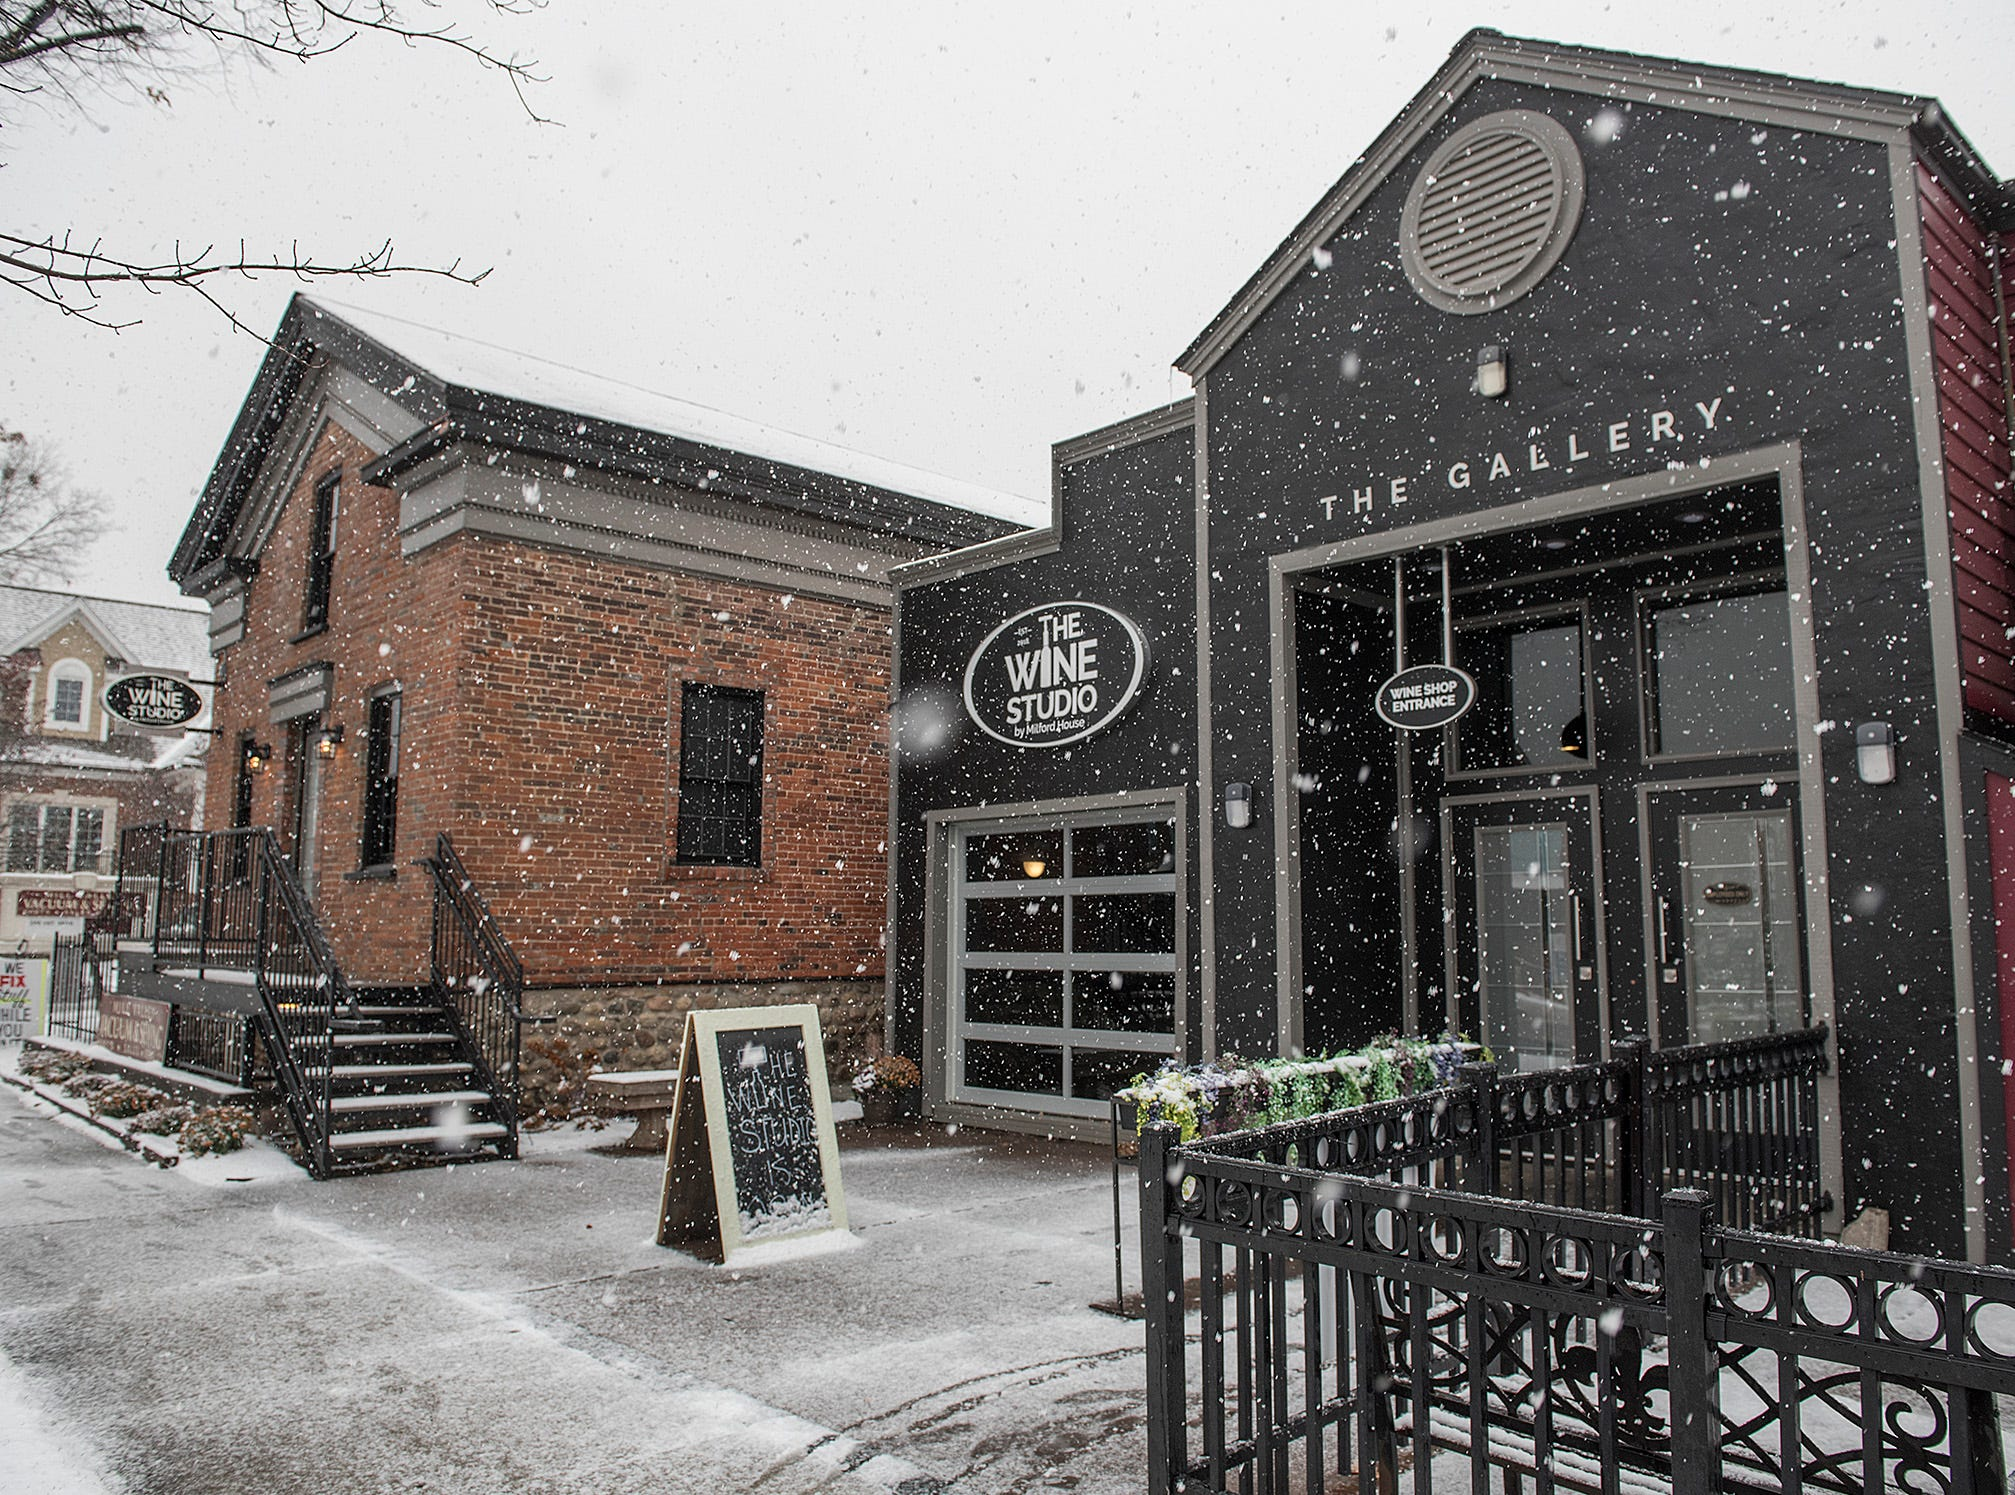 Taste wine by the glass or buy a bottle at the new The Wine Studio in downtown Milford